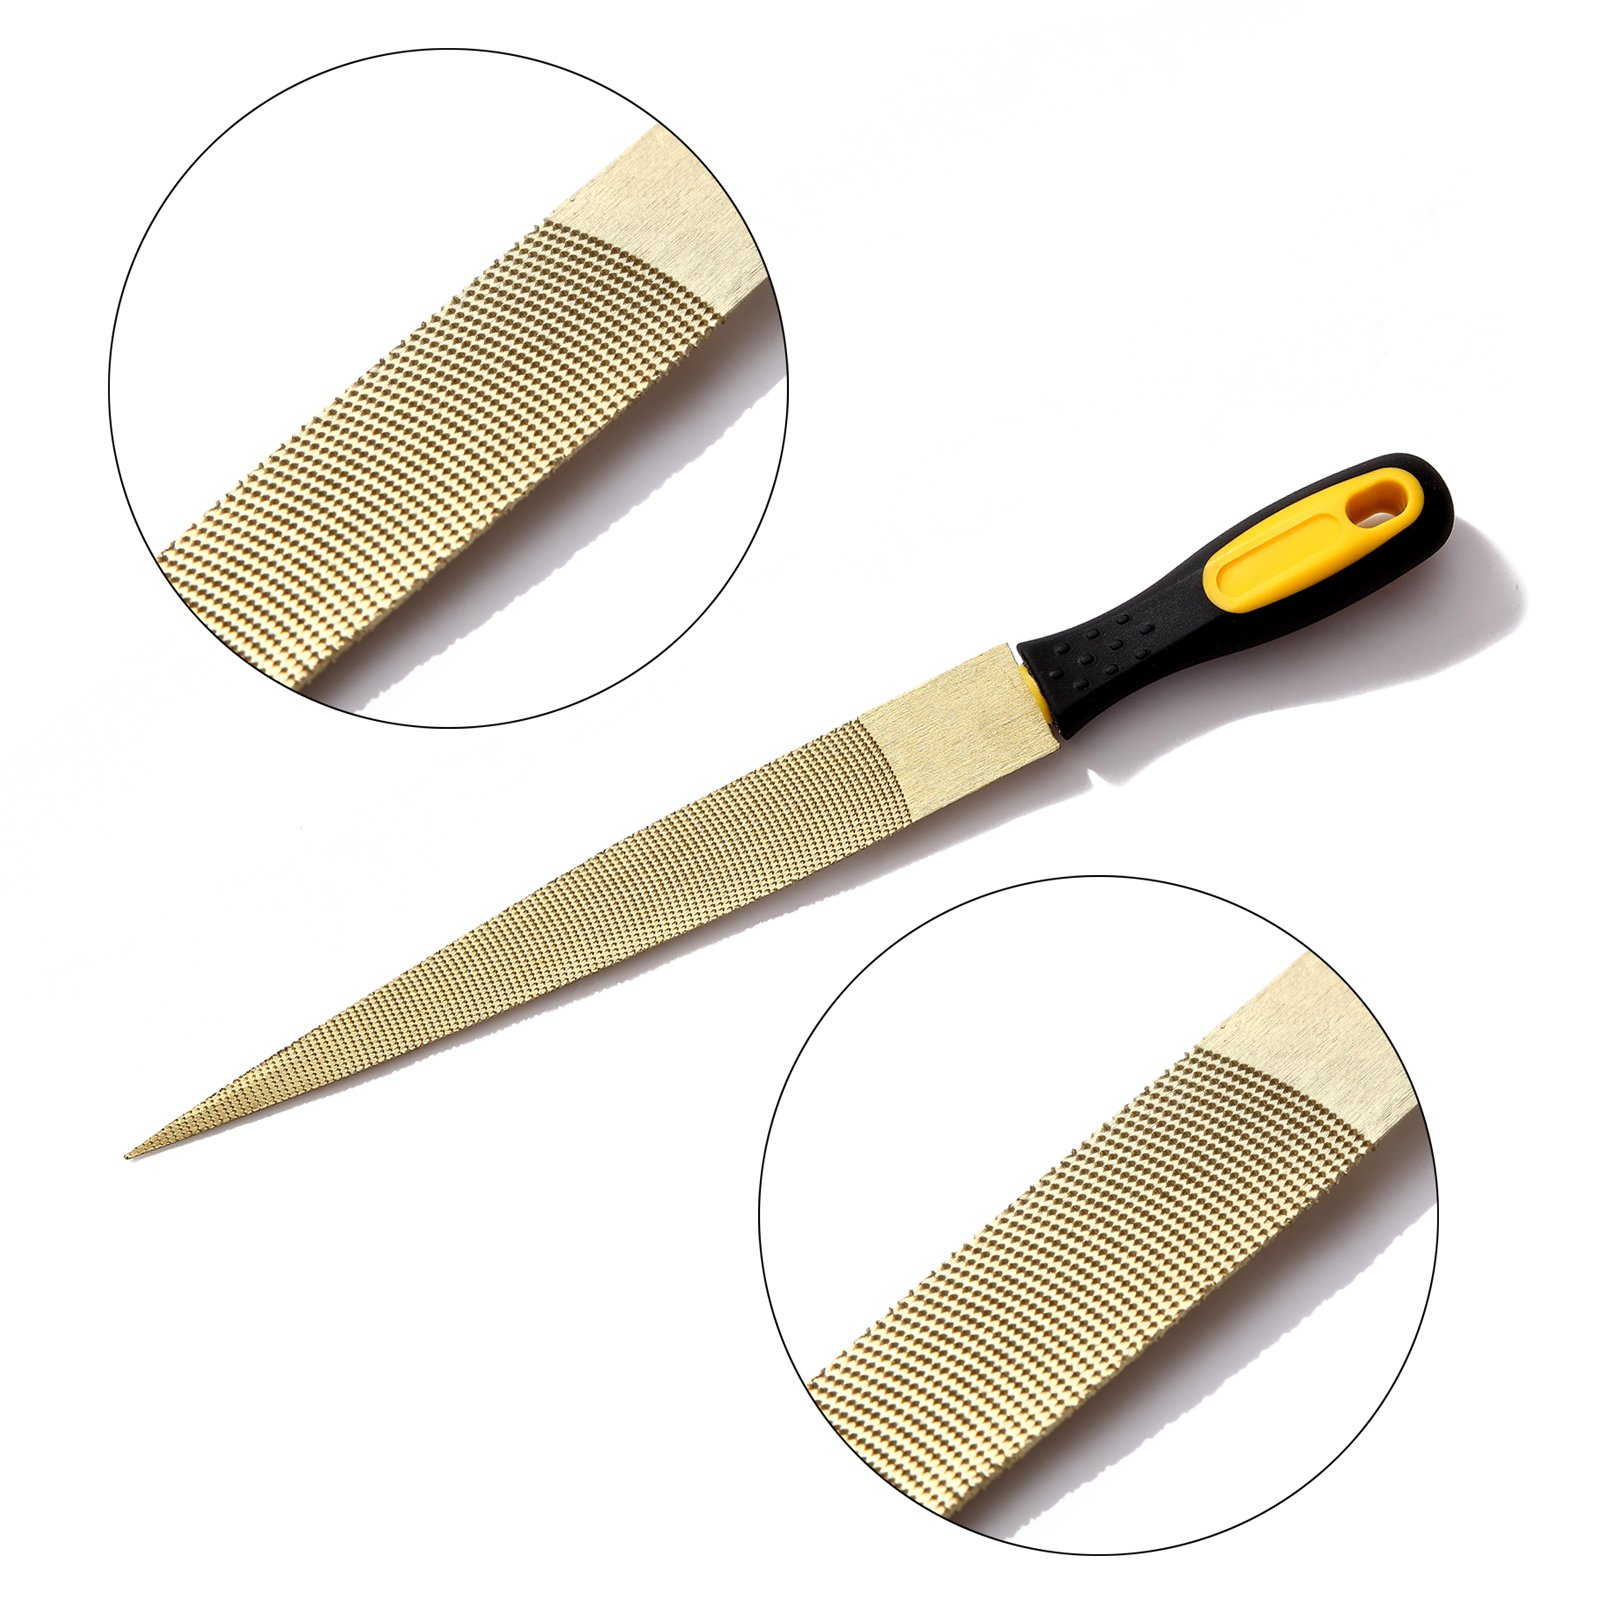 NKTM 8'' and 10'' Golden Tapered Wood Rasp Bastard File with Rubber Handle in Gift Bag for Carving 2 Pack by NKTM (Image #7)